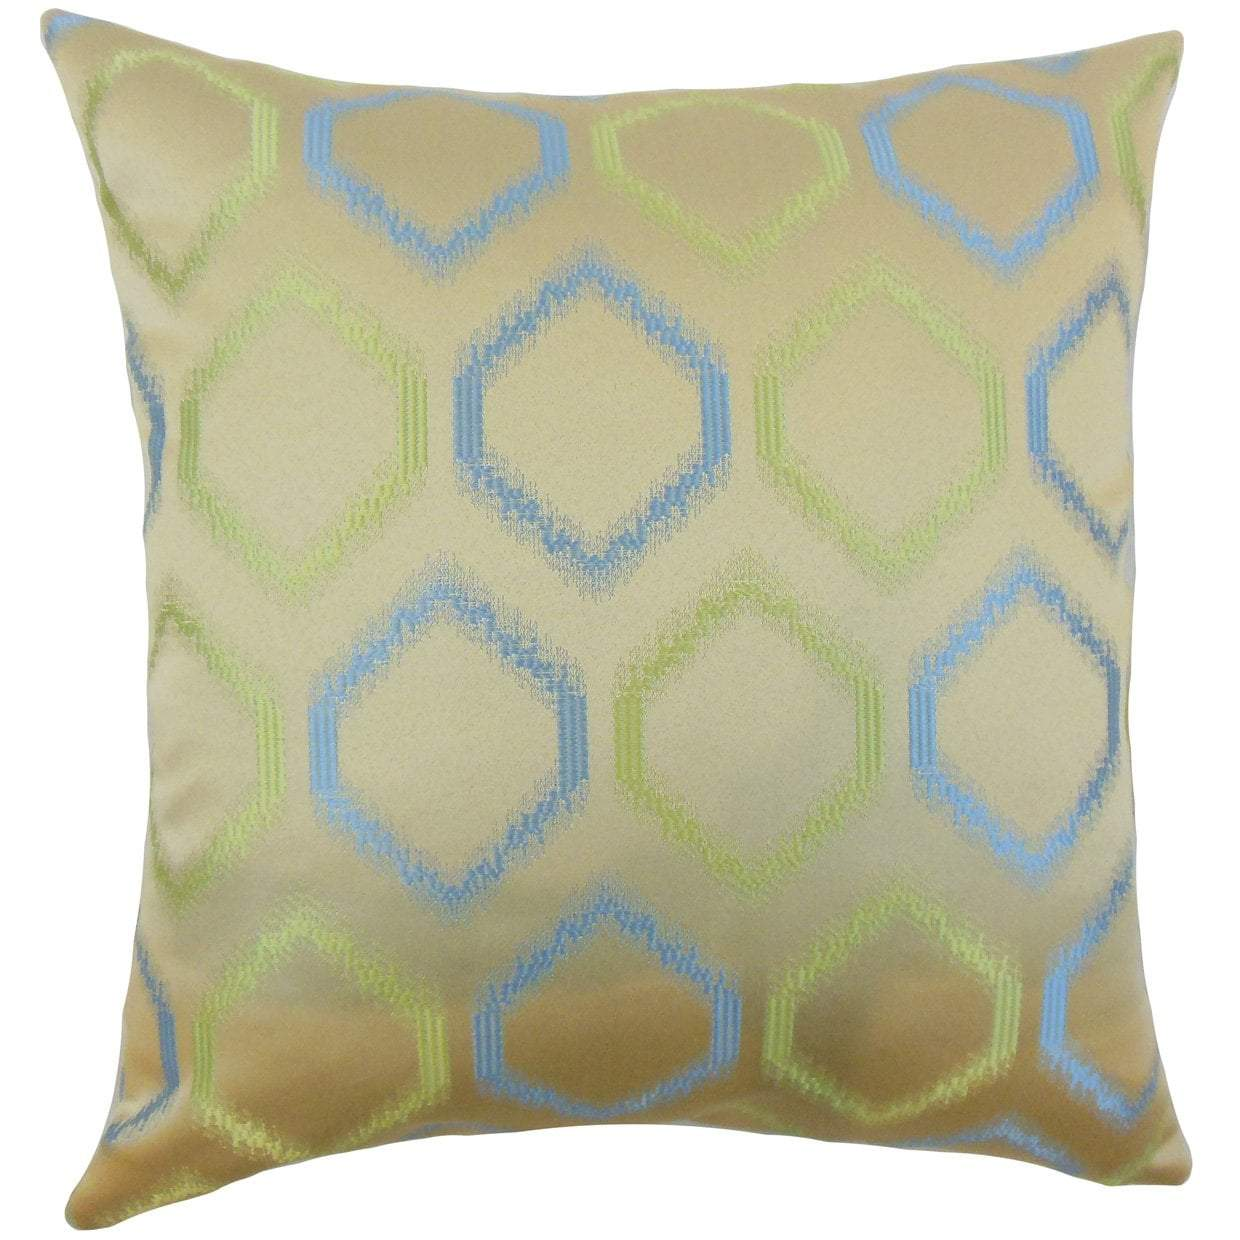 Blue Synthetic Geometric Contemporary Throw Pillow Cover